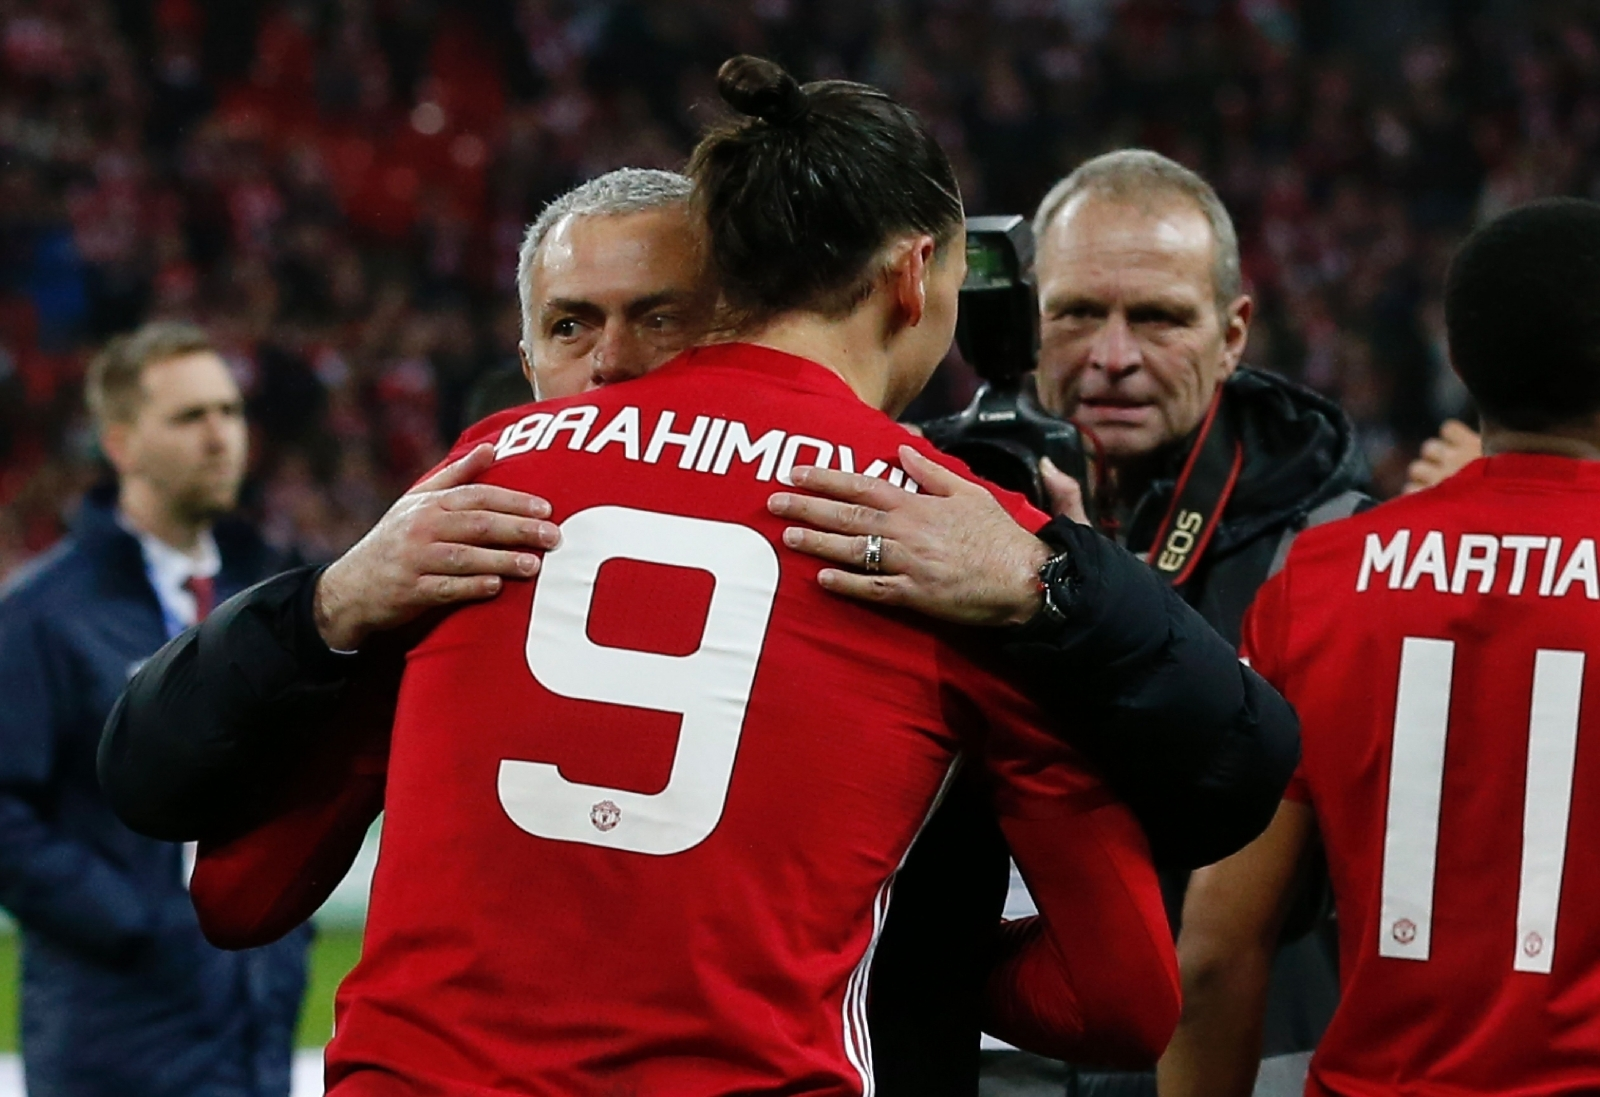 Ibrahimovic in talks with Manchester United over new contract